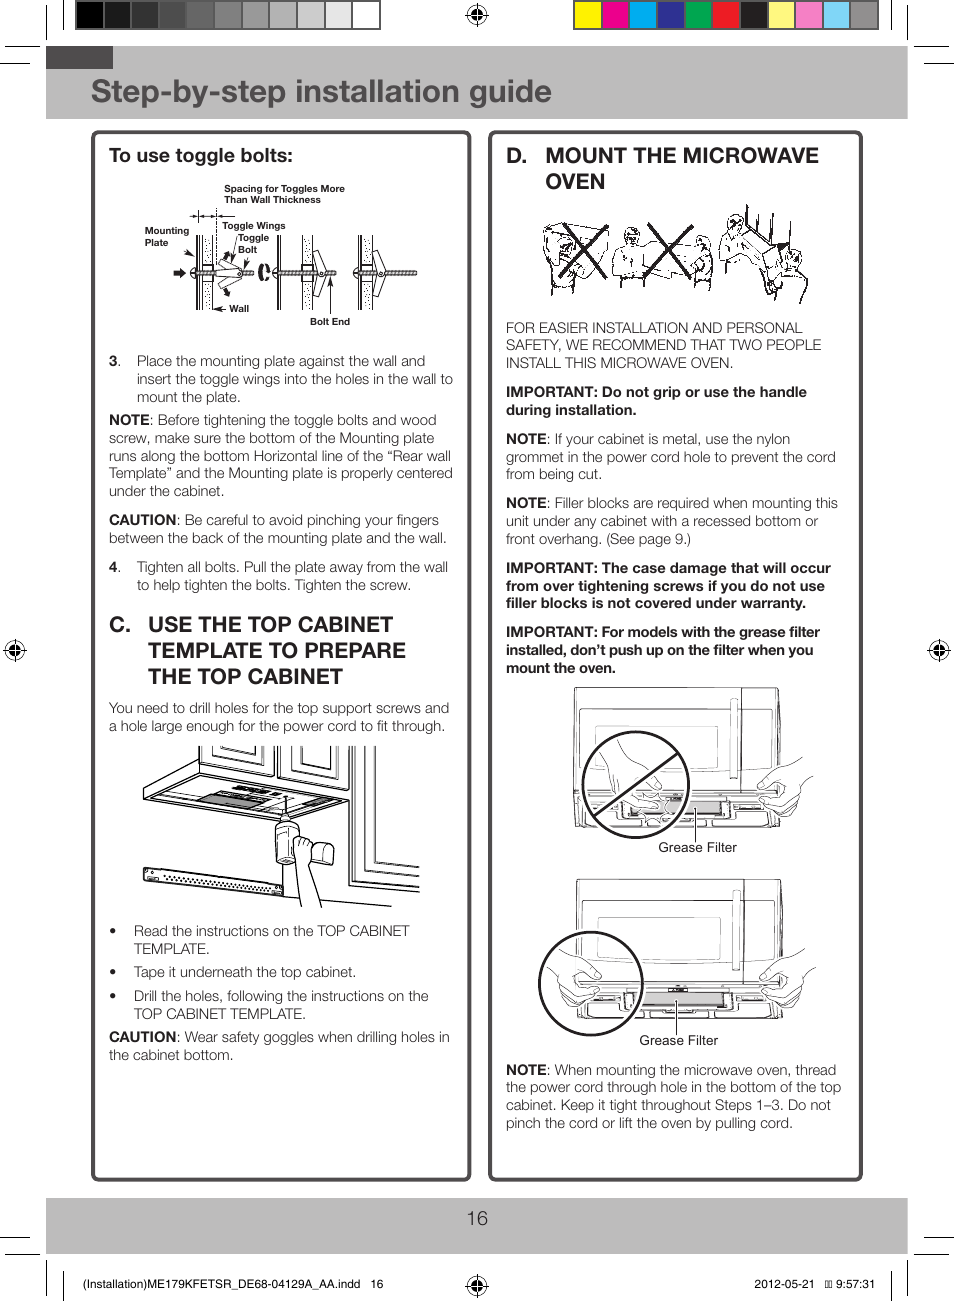 Step-by-step installation guide, D. mount the microwave oven | Samsung